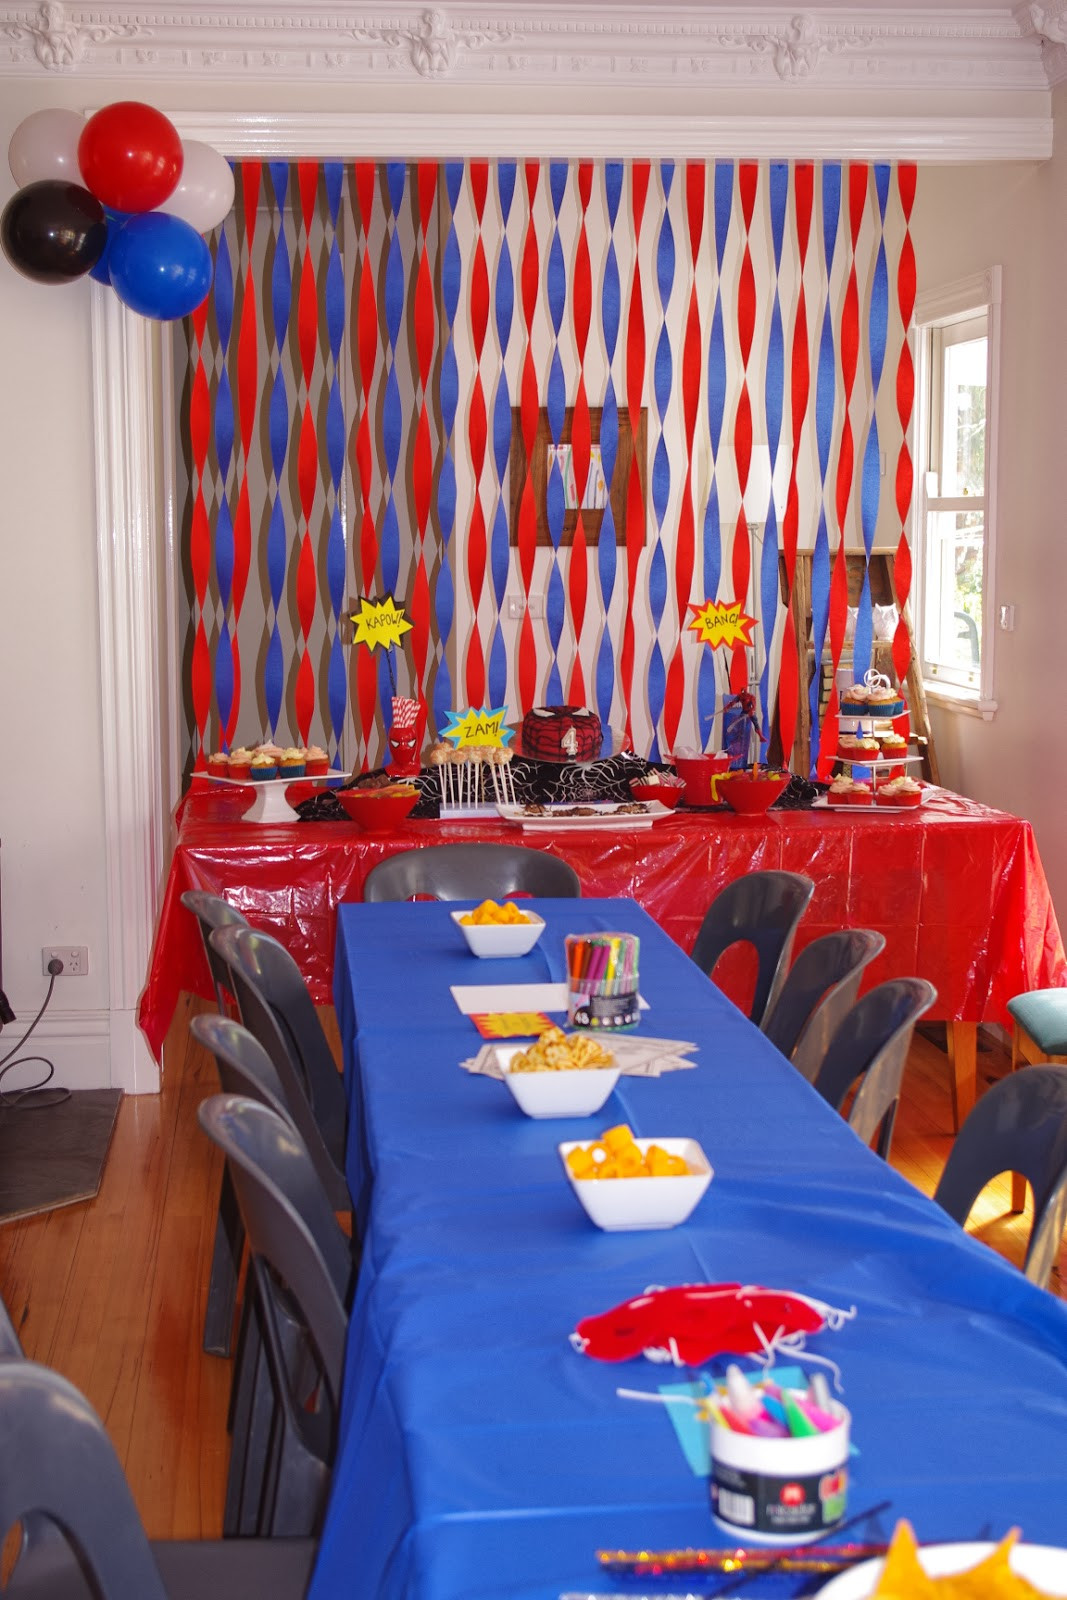 Best ideas about Spiderman Birthday Party . Save or Pin the nOATbook Spider man party on a bud Now.